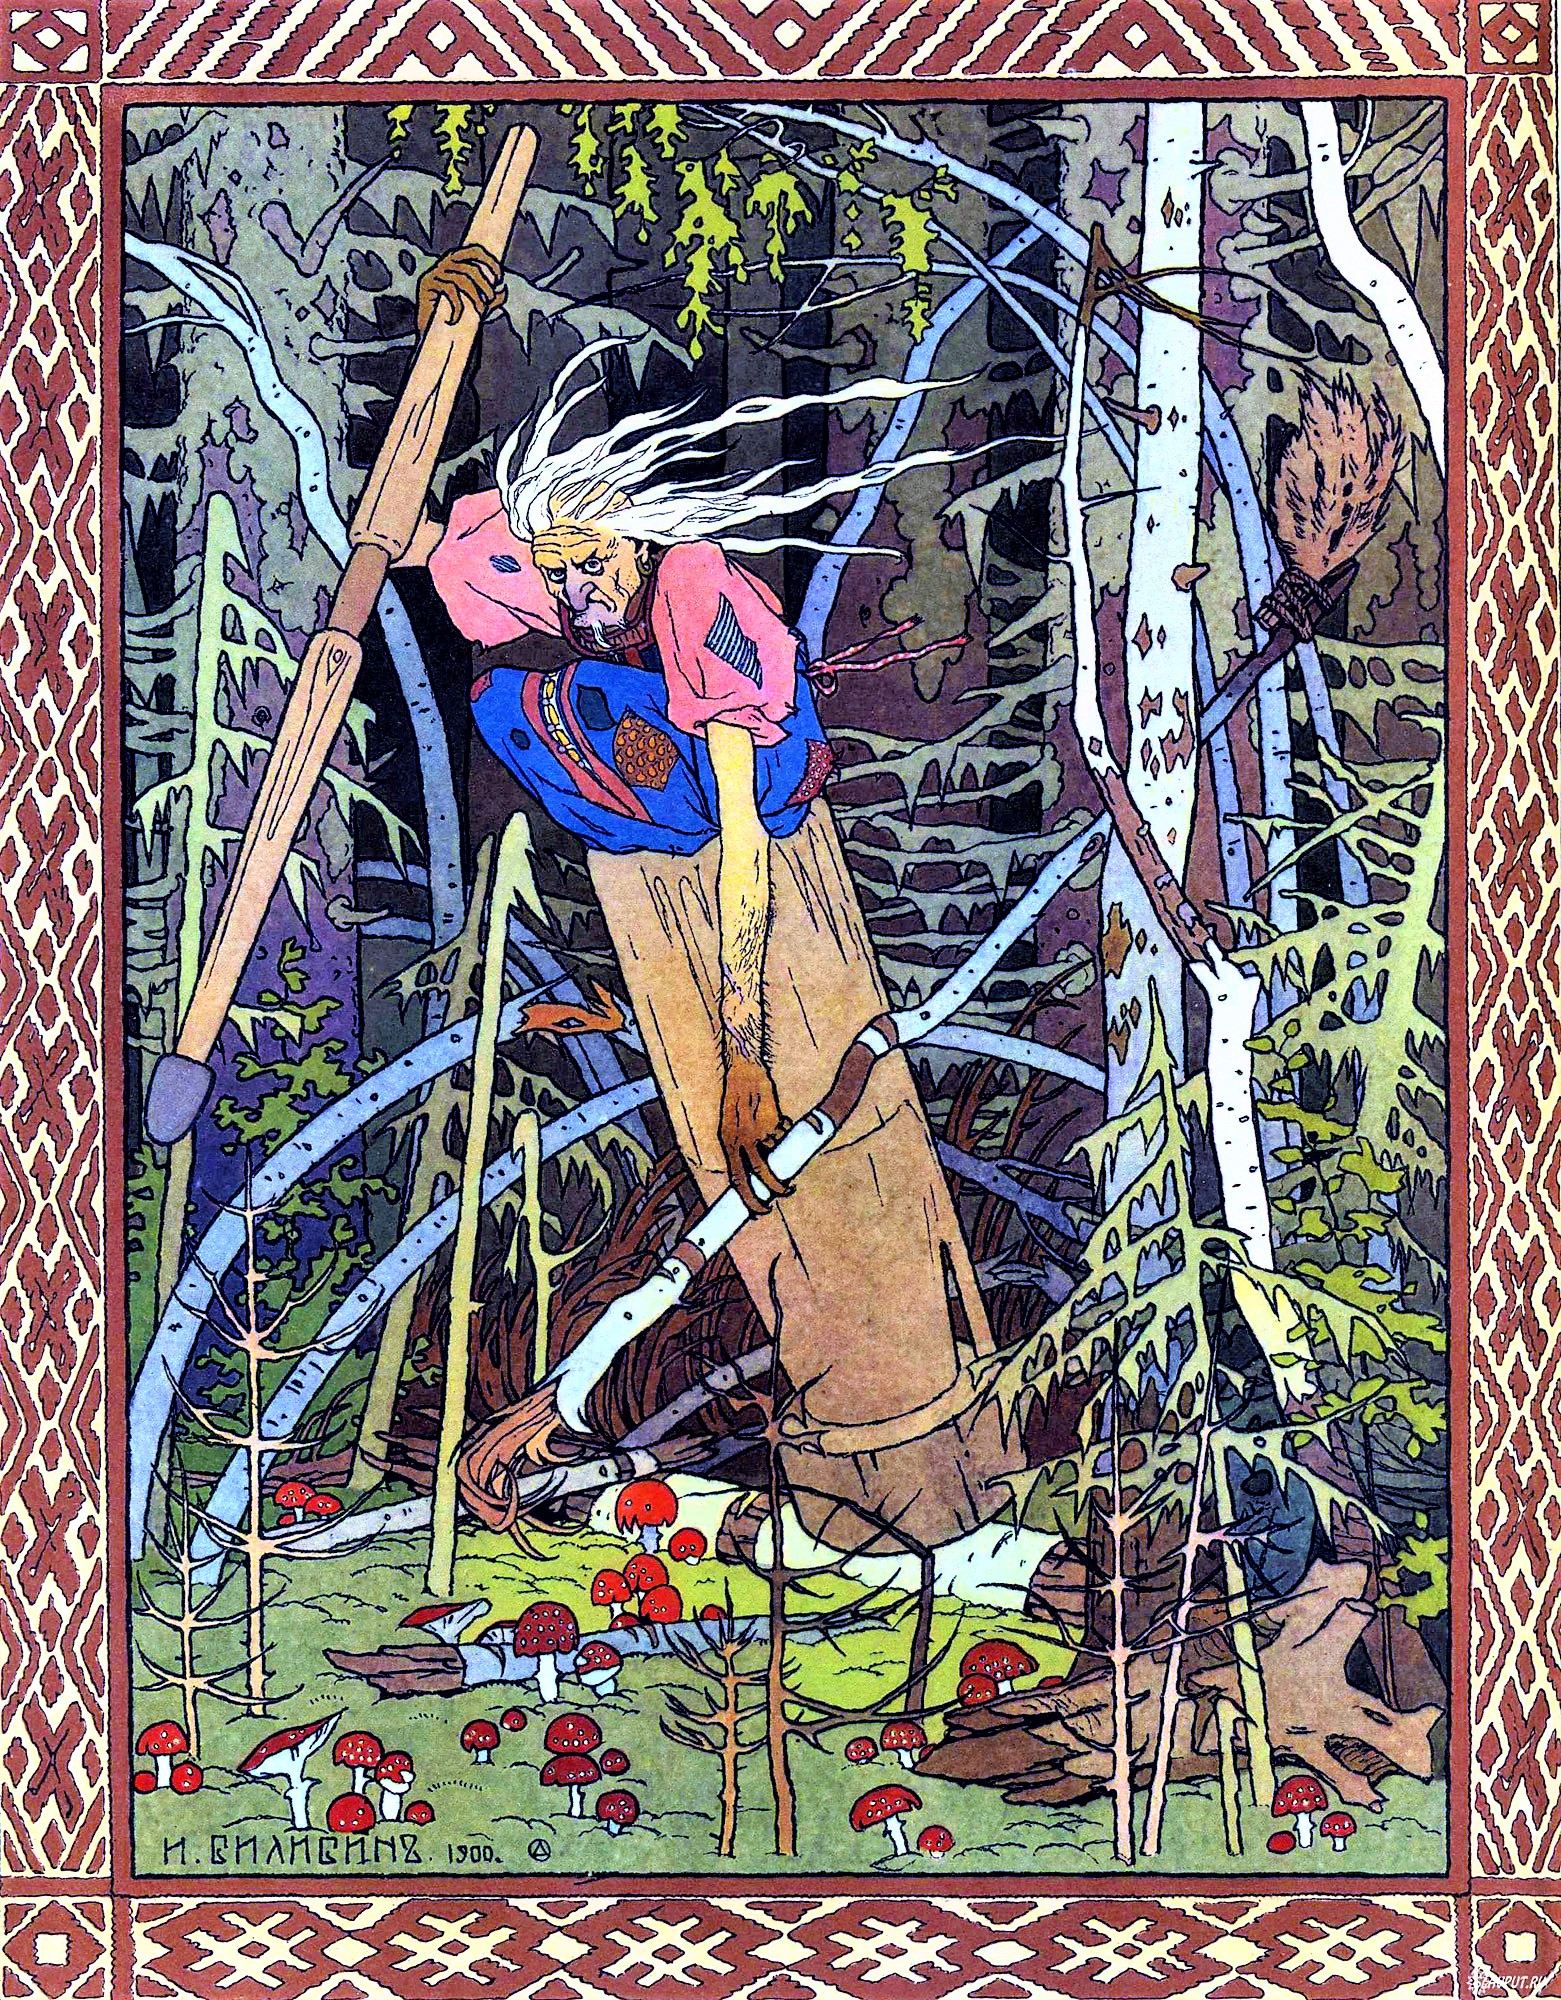 Baba Yaga crashing through the forest